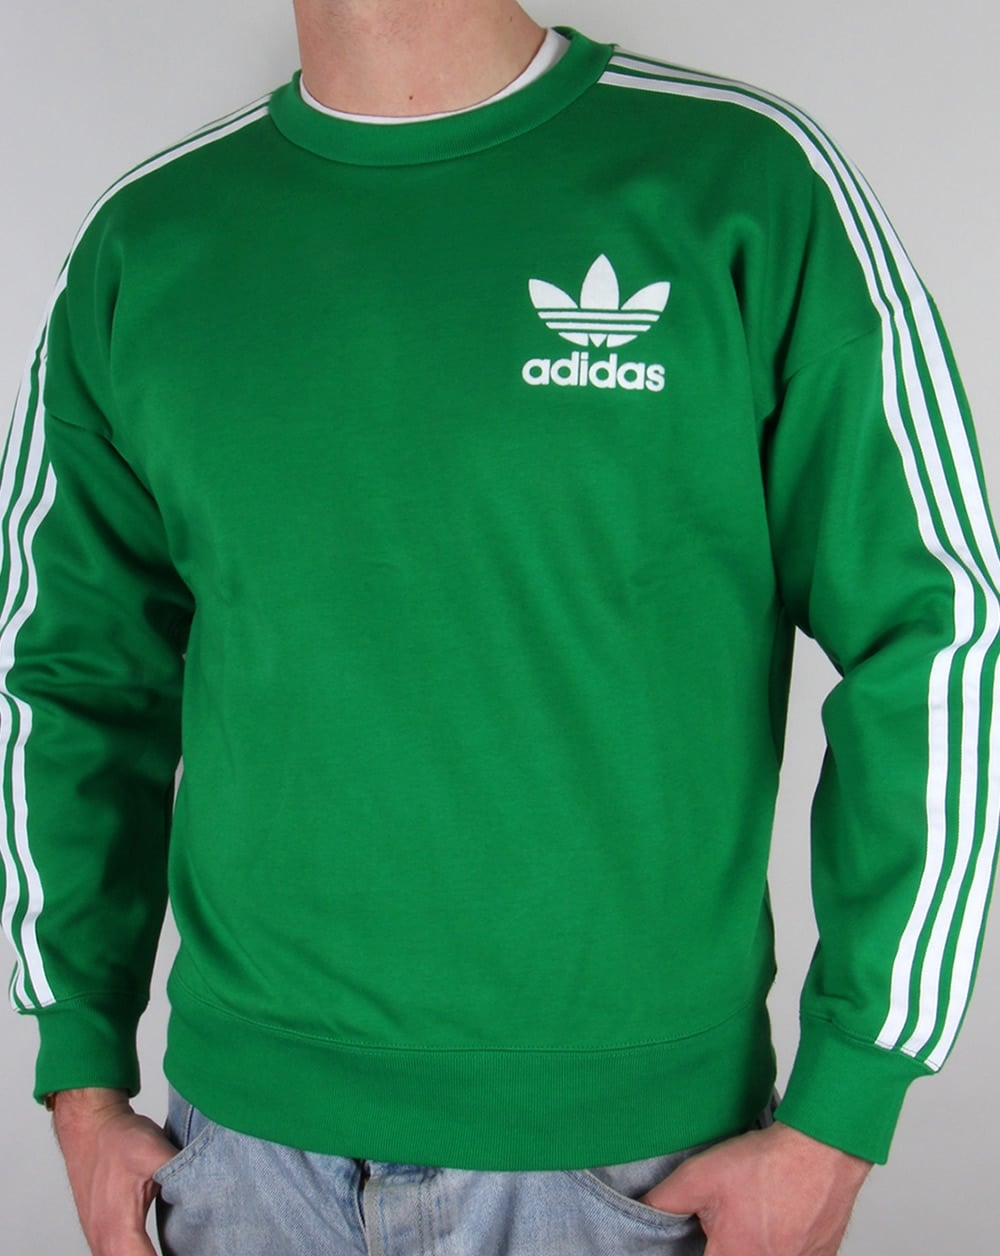 We have a variety of Green Sweatshirts & Hoodies and hoodies to fit your fashion needs. Tell the world how you feel or rock a funny saying with your outerwear. Green Sweatshirts & Hoodies and hoodies are great gifts for any occasion.